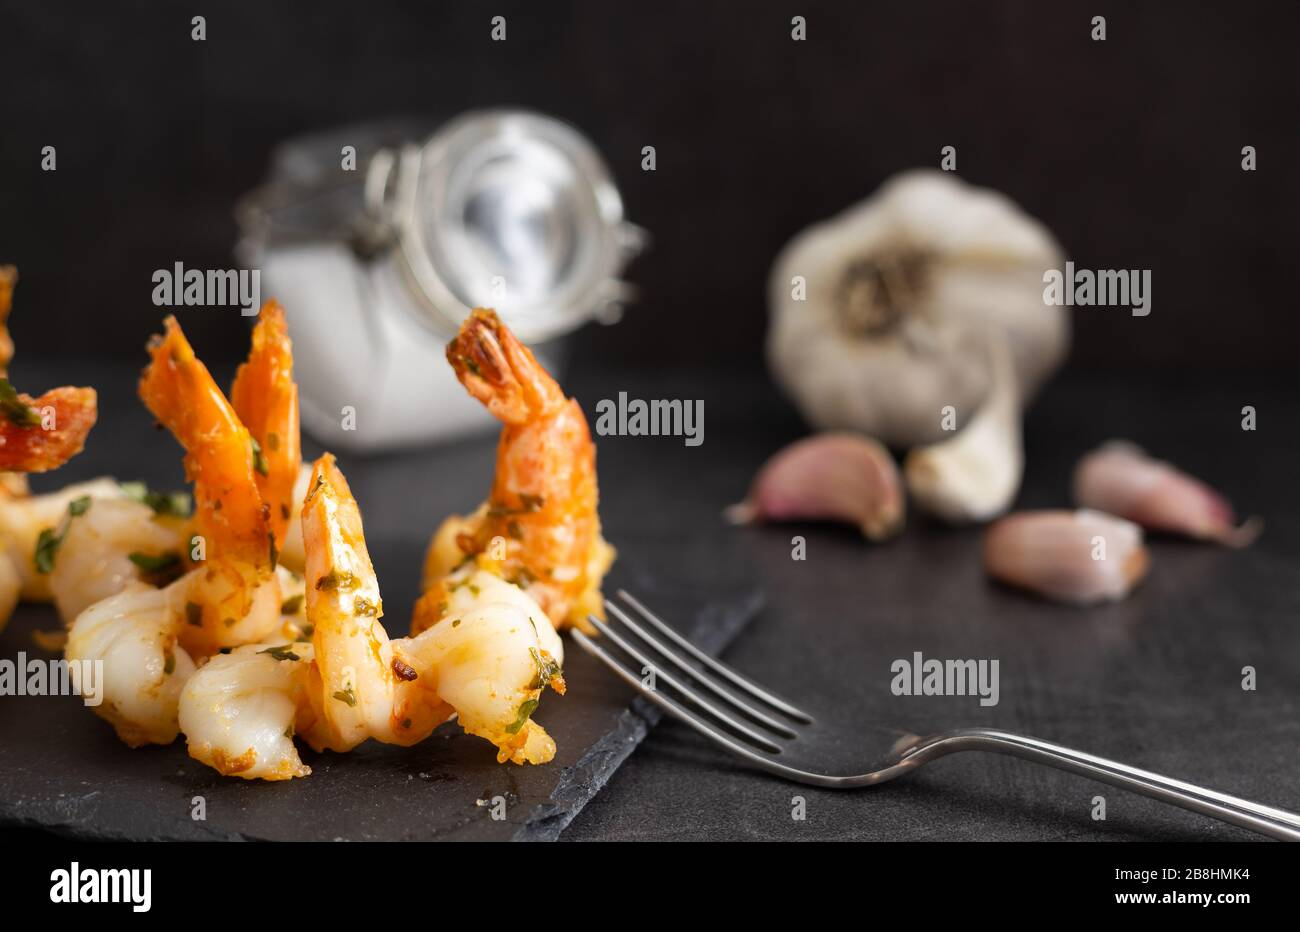 Delicious seafood. Homemade prawns with garlic sauce on a black plate. Stock Photo